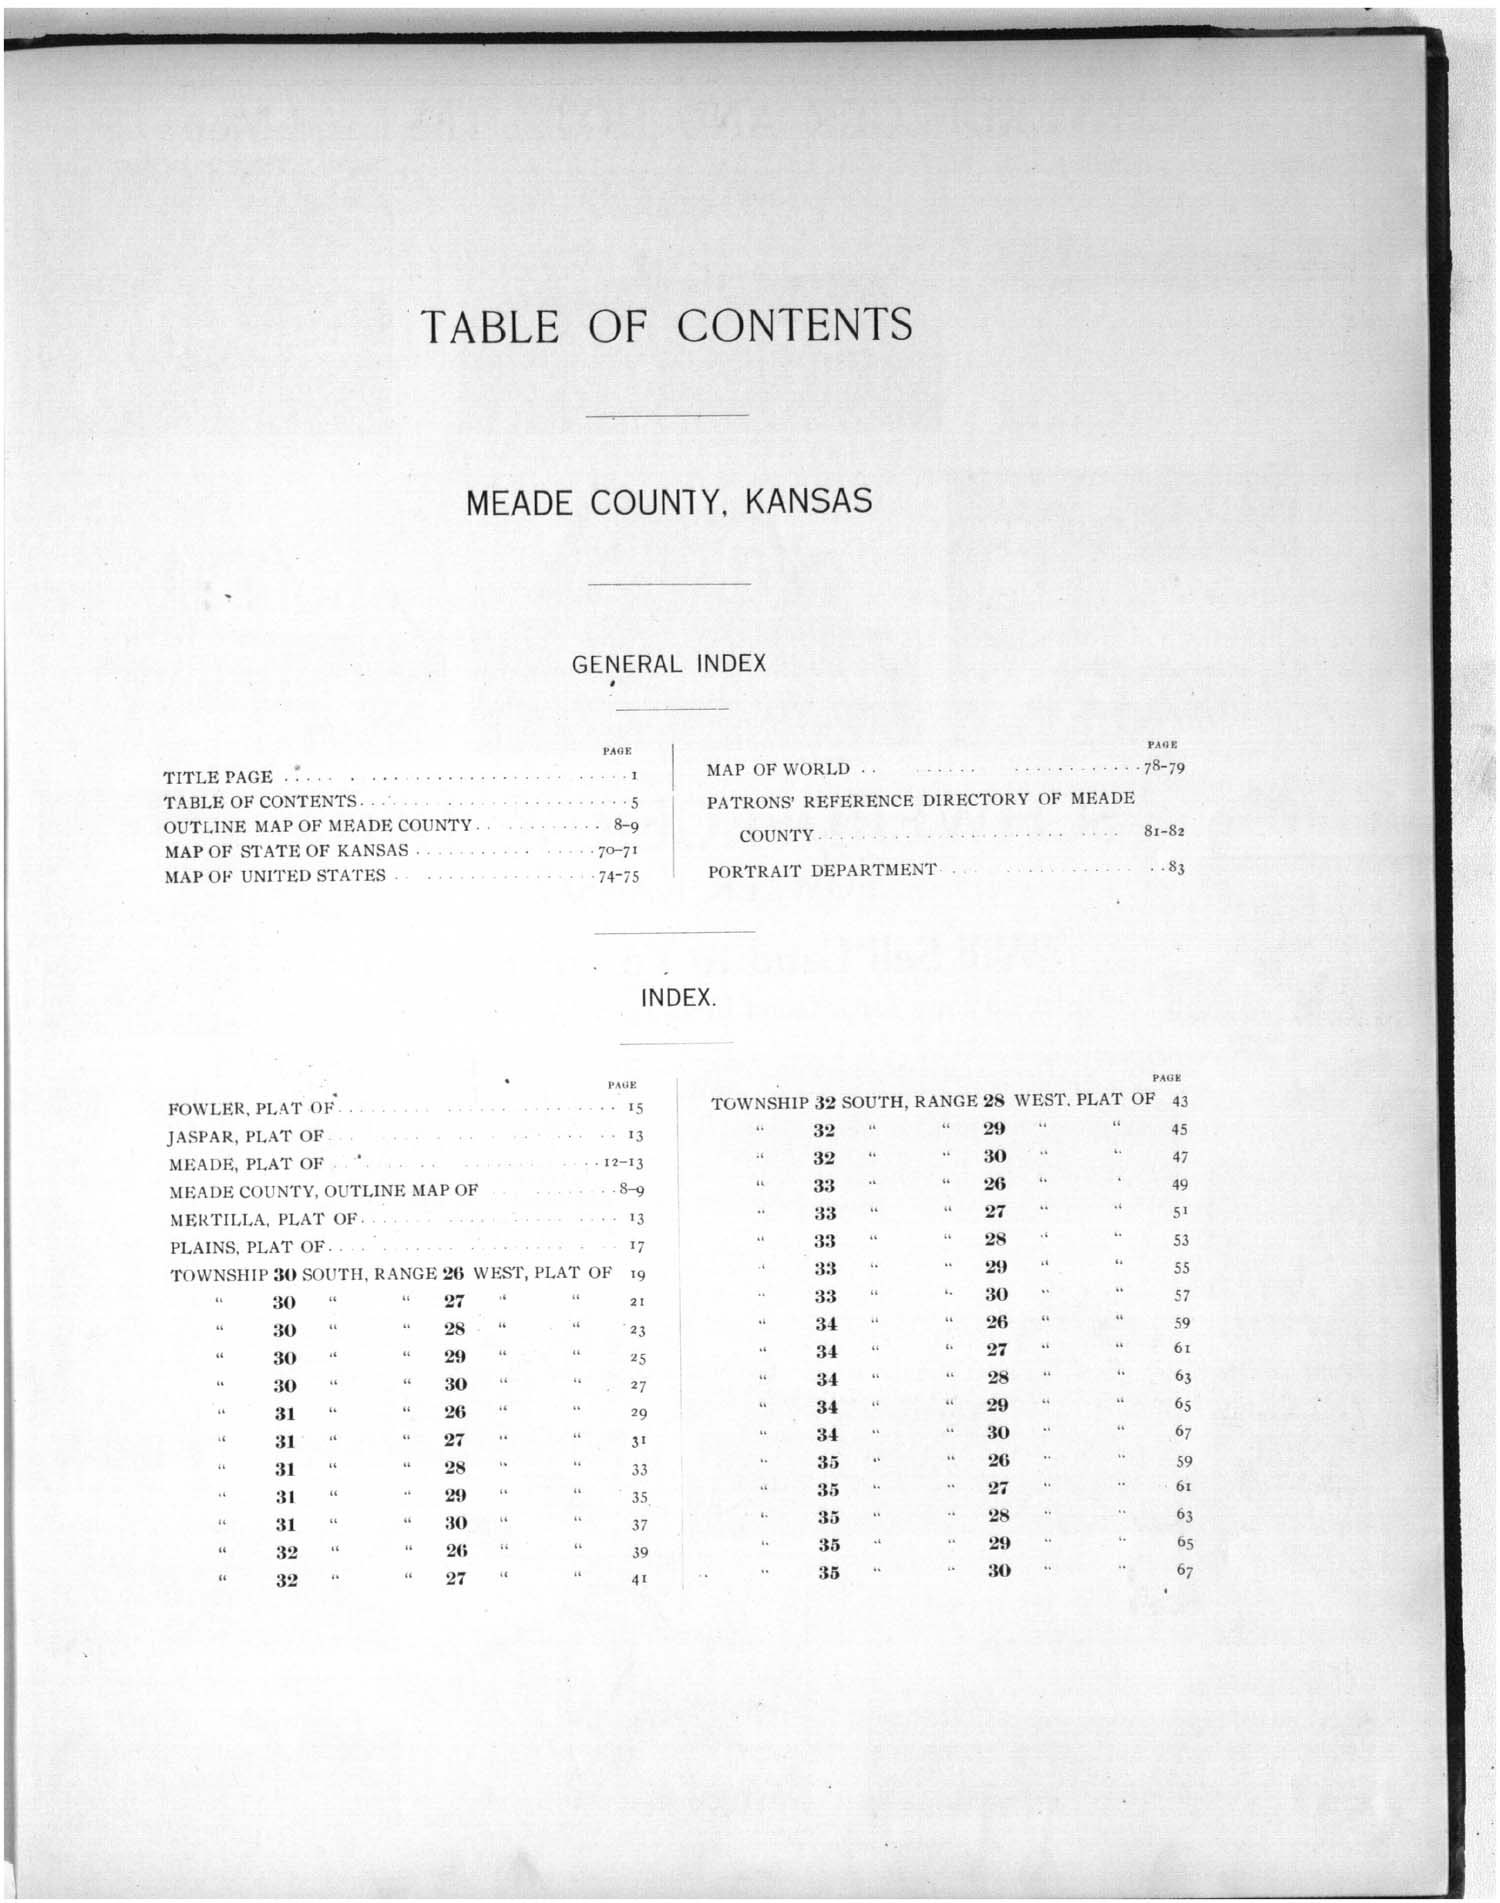 Plat book of Meade County, Kansas - Table of Contents